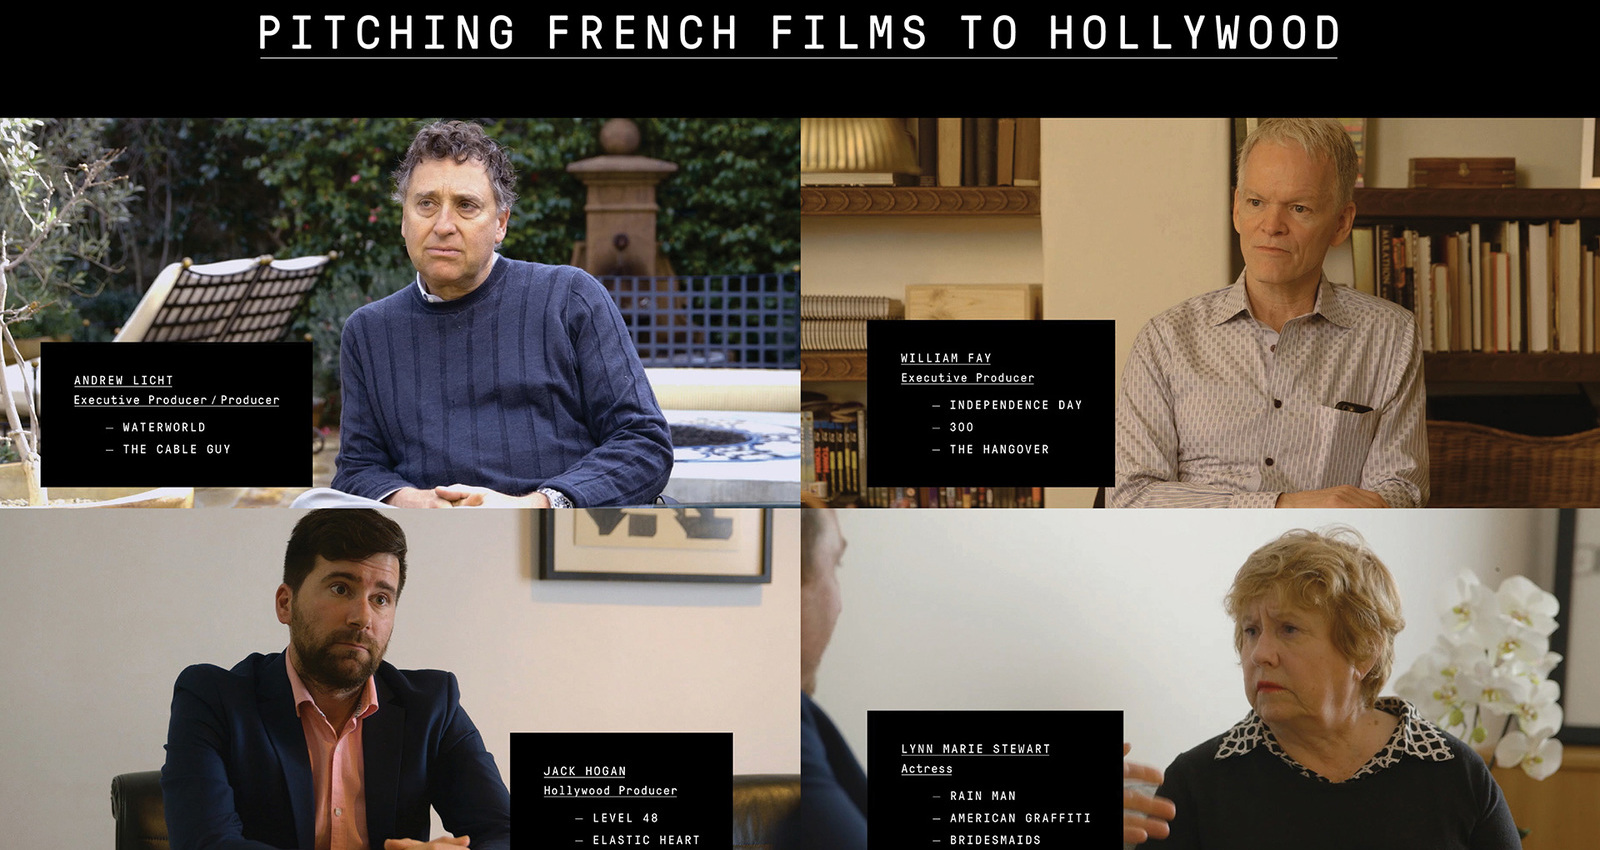 Pitching French Films To Hollywood